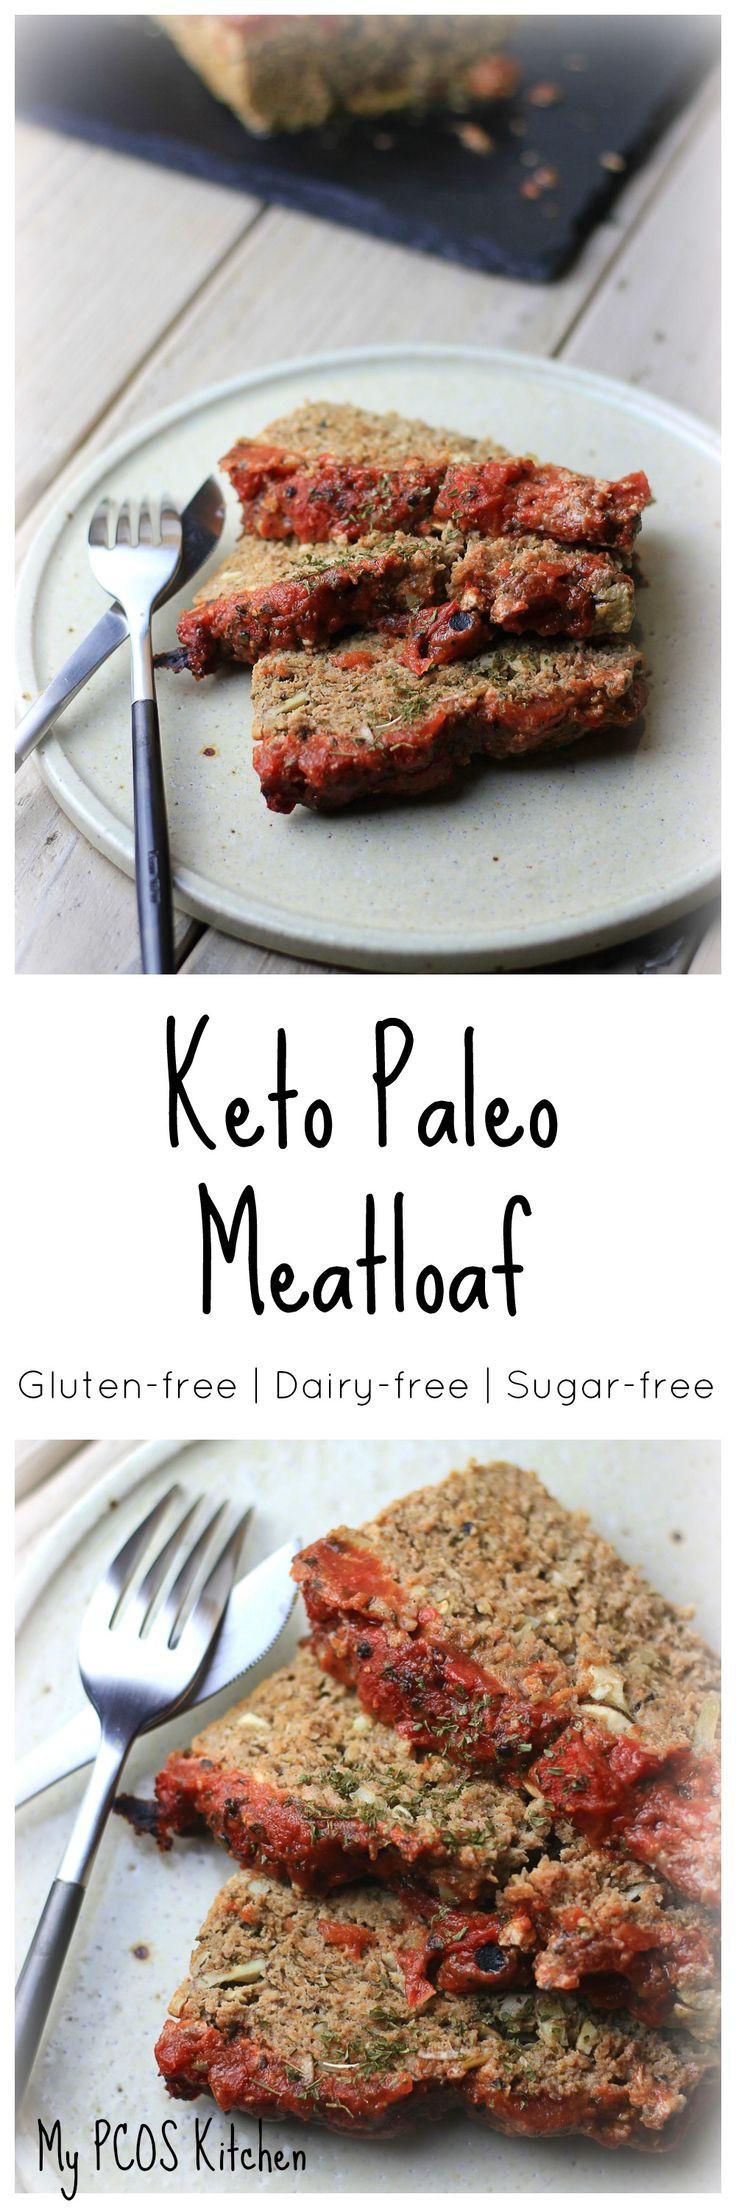 Keto Dairy Free Recipes  best Paleo Recipes For Beginners images on Pinterest